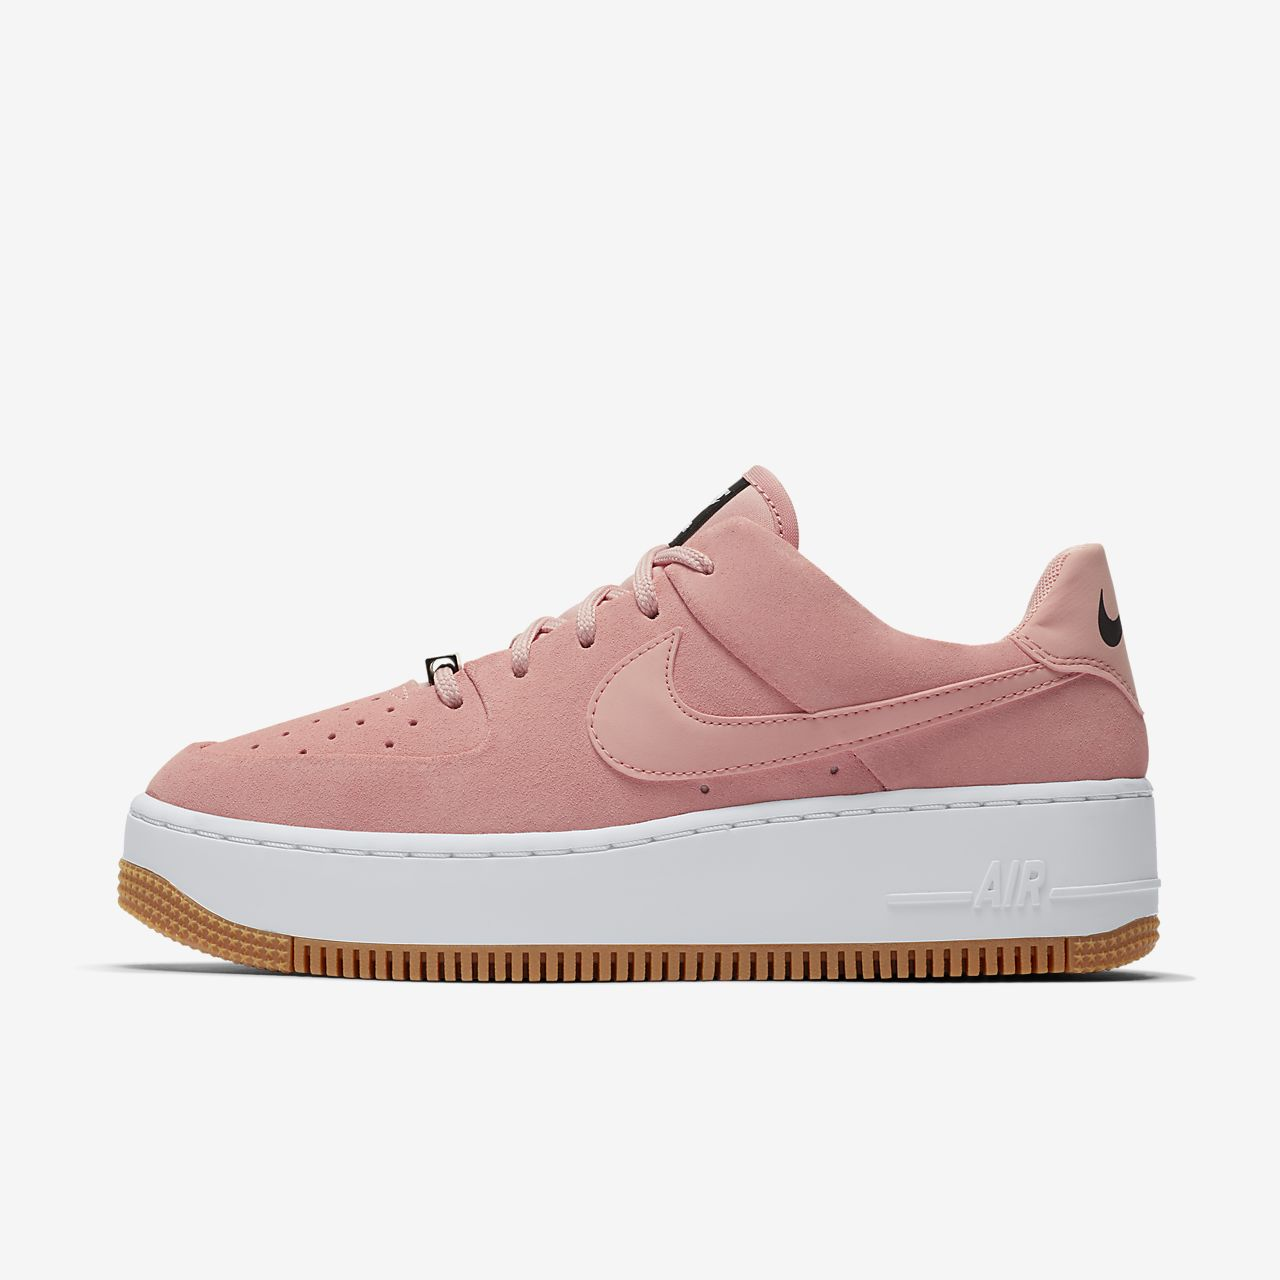 nike air force 1 rosa palo zapatos